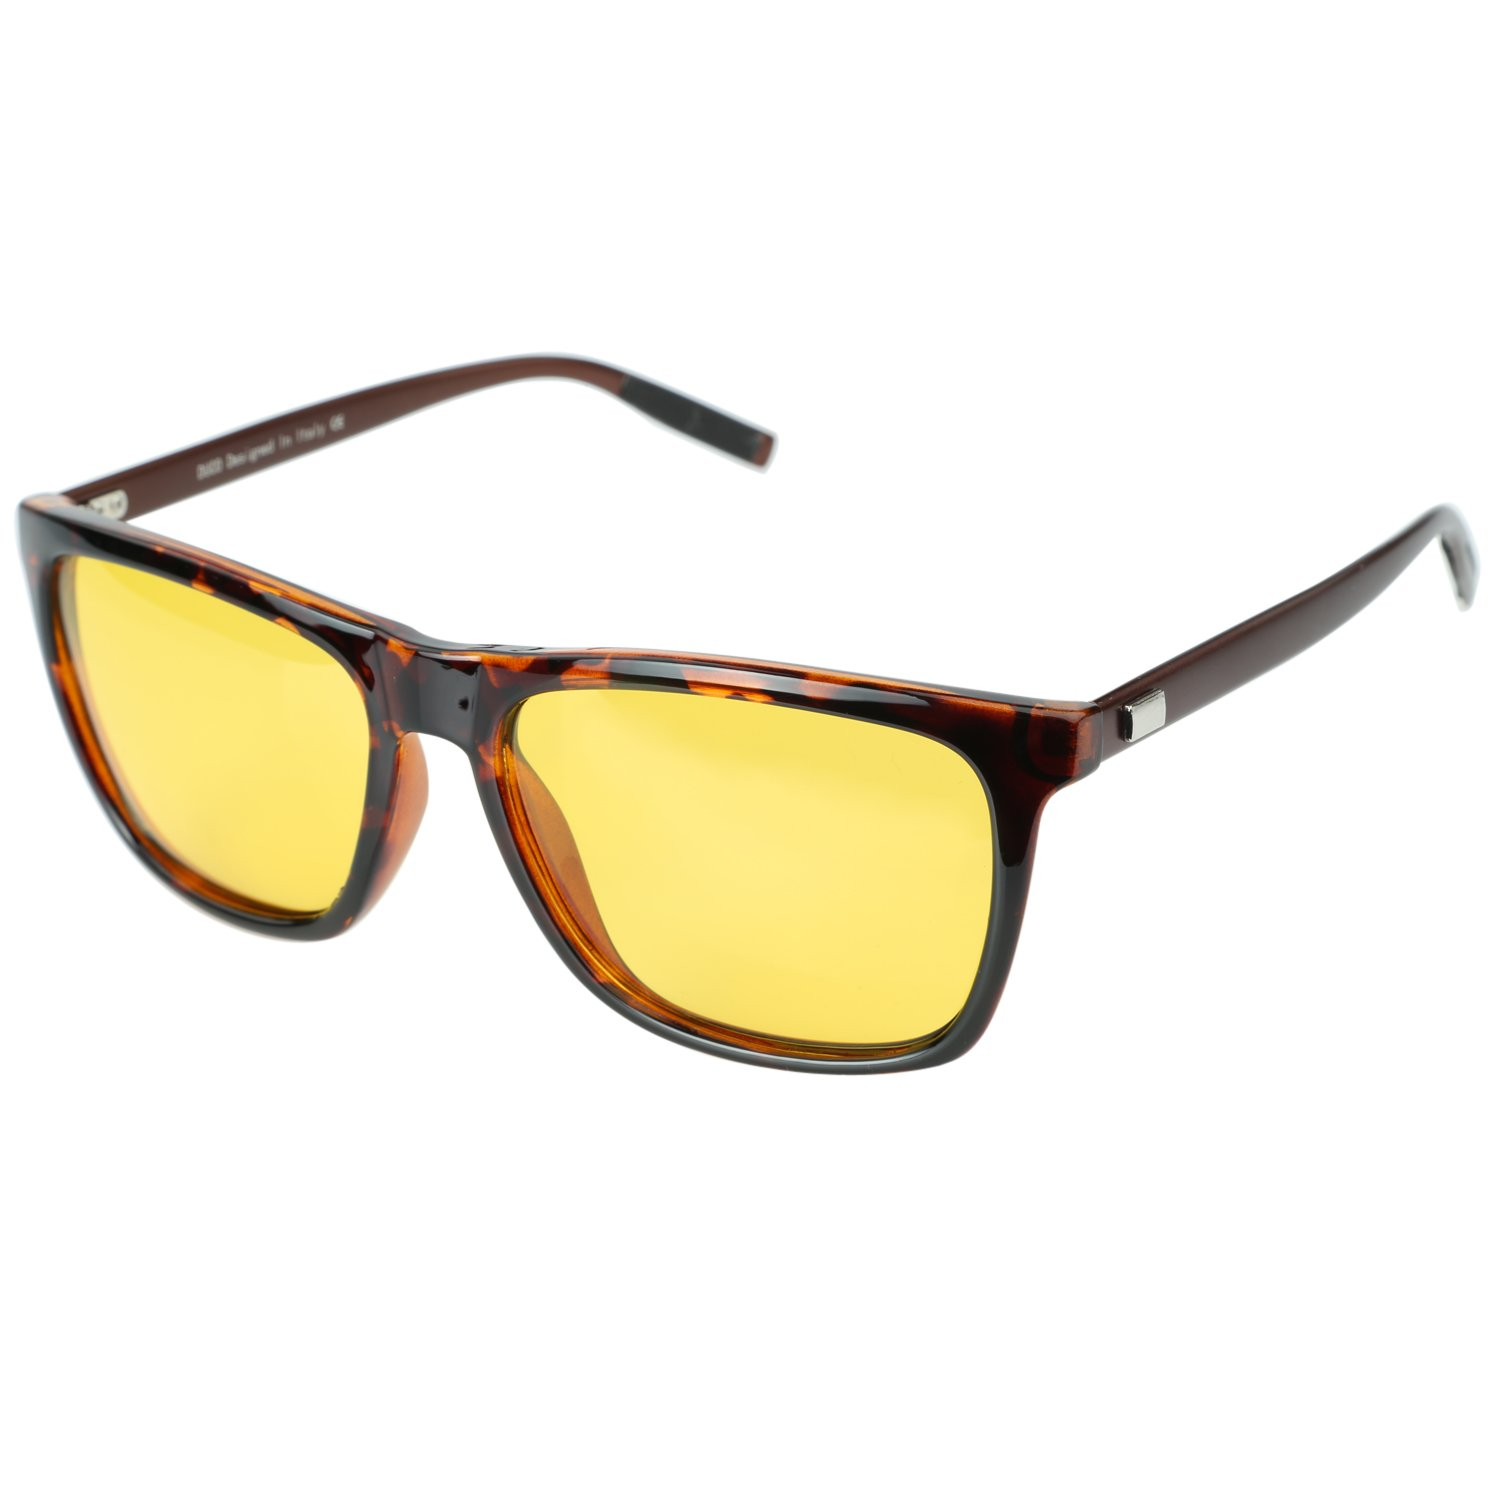 Duco Night Driving Glasses for Headlight Anti-glare Night Time Yellow Lenses 3029 by DUCO